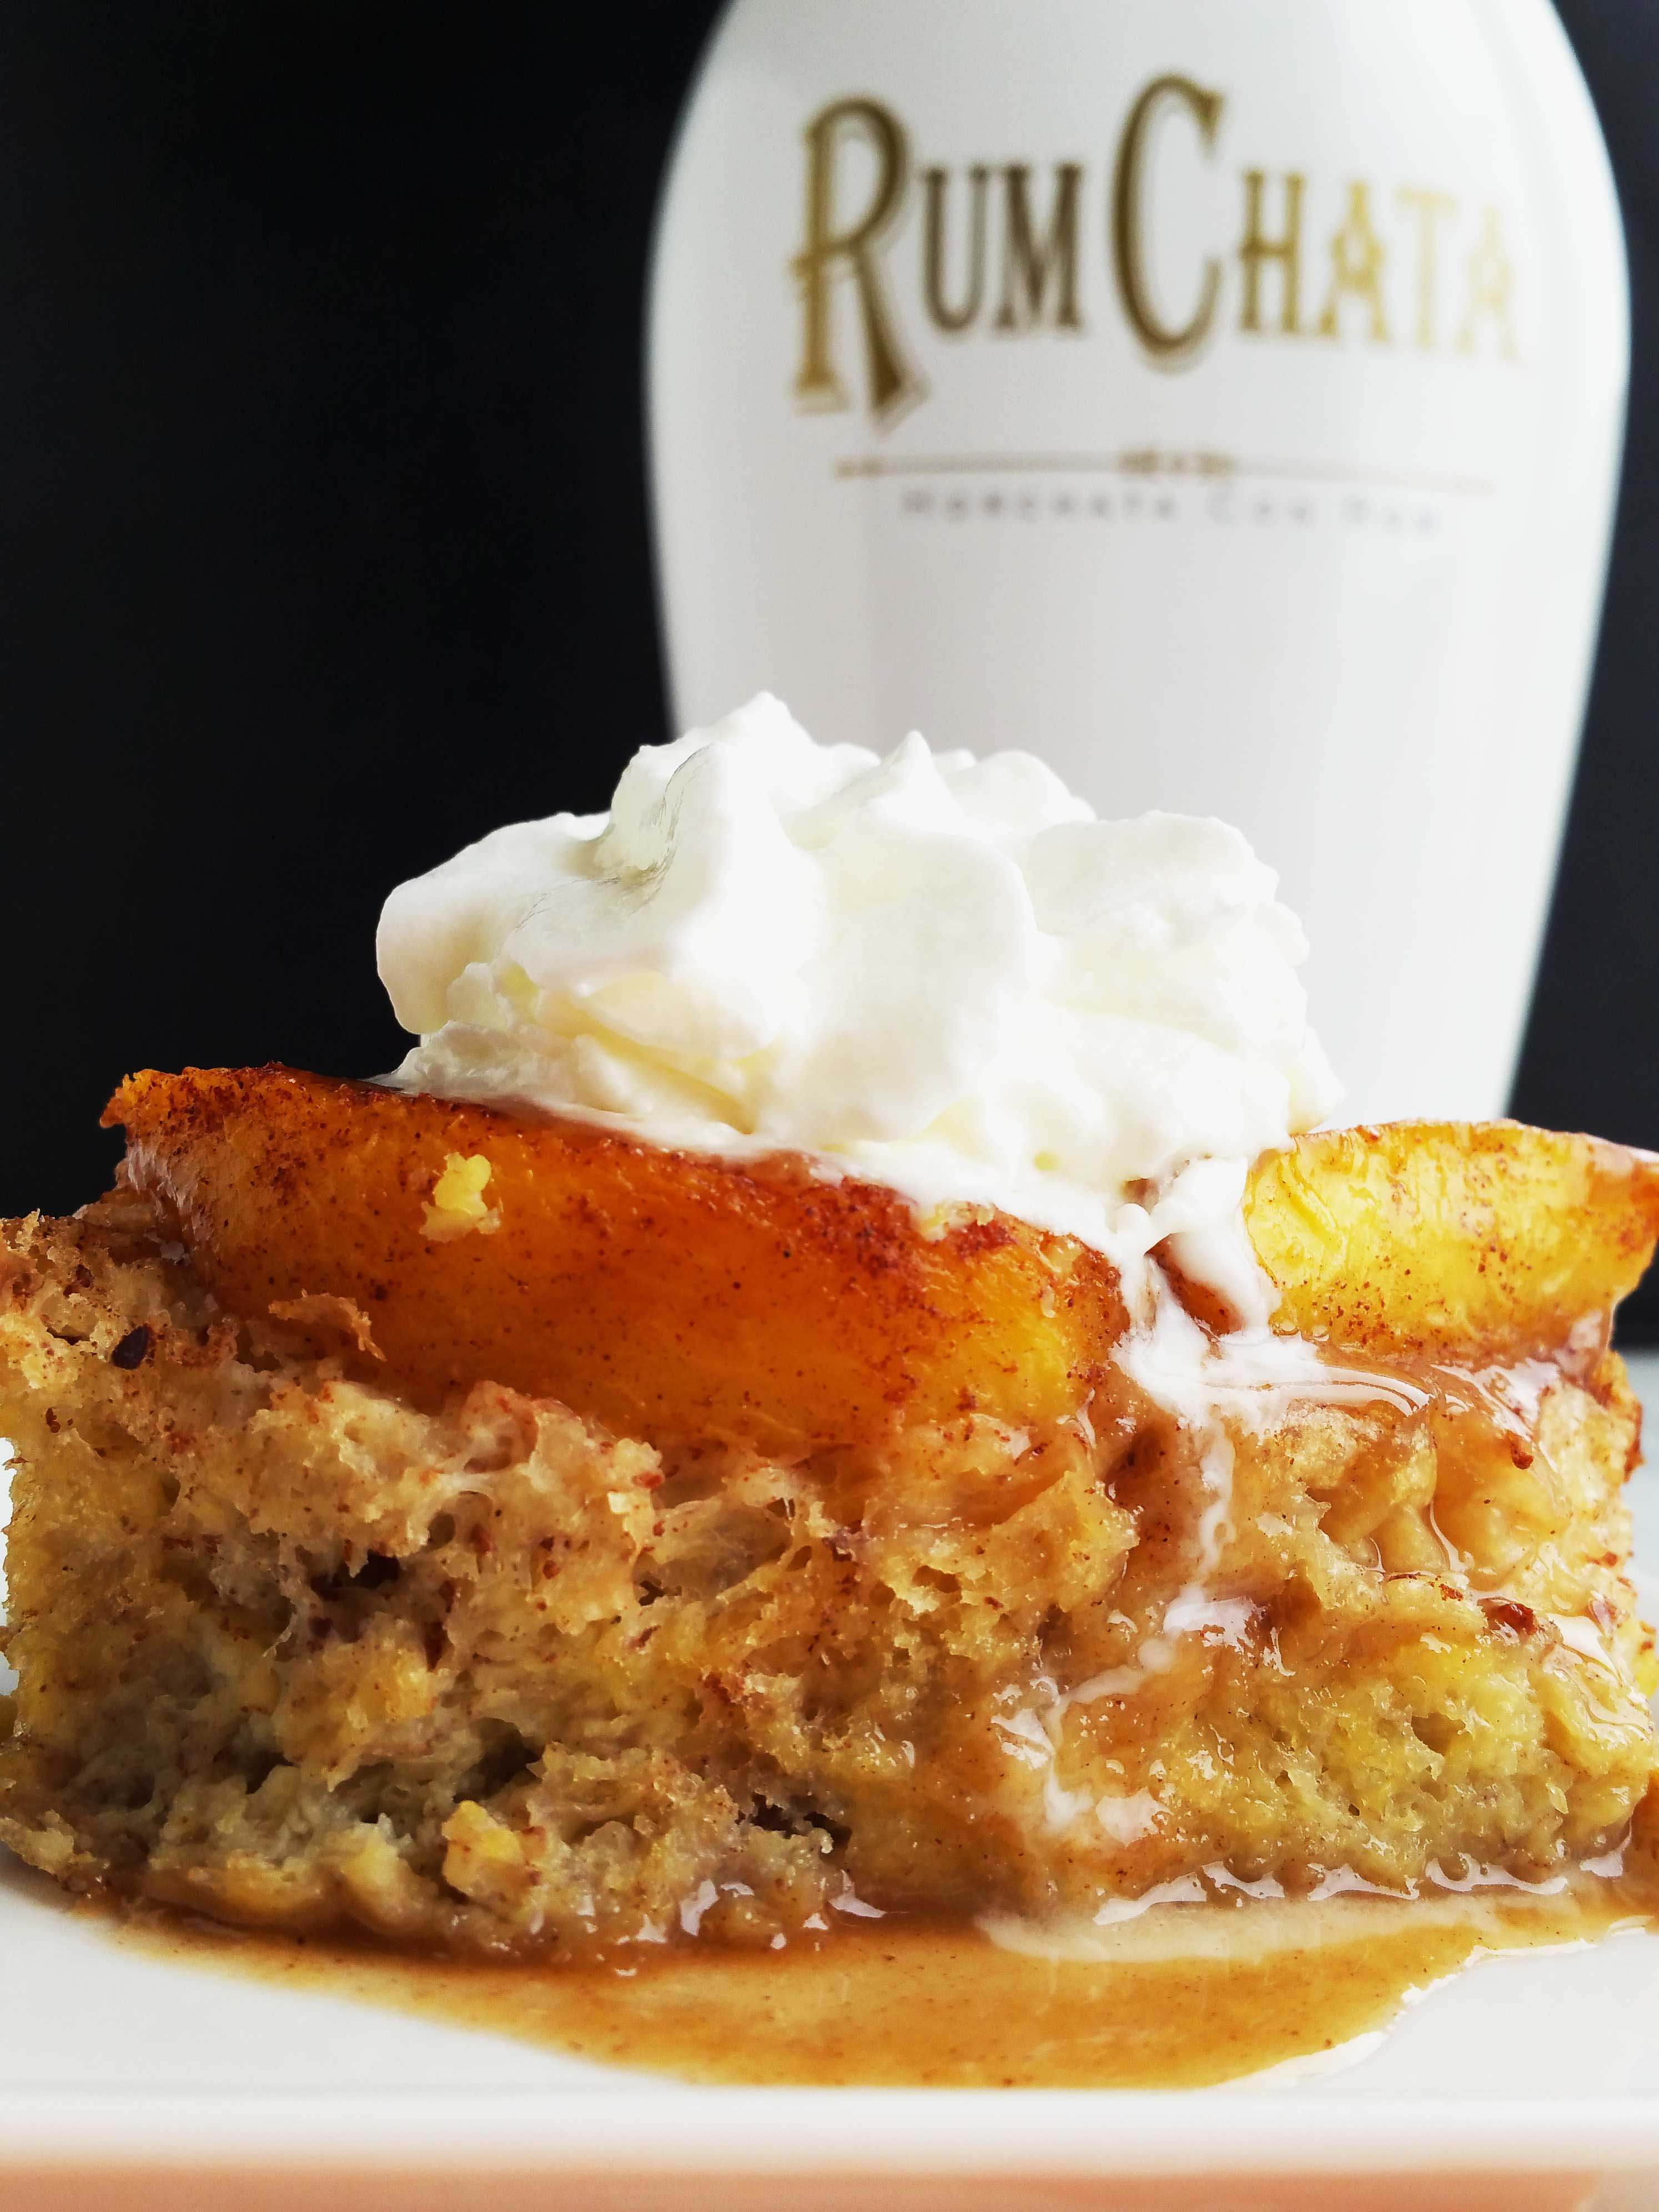 Rum Chata Peach French Toast